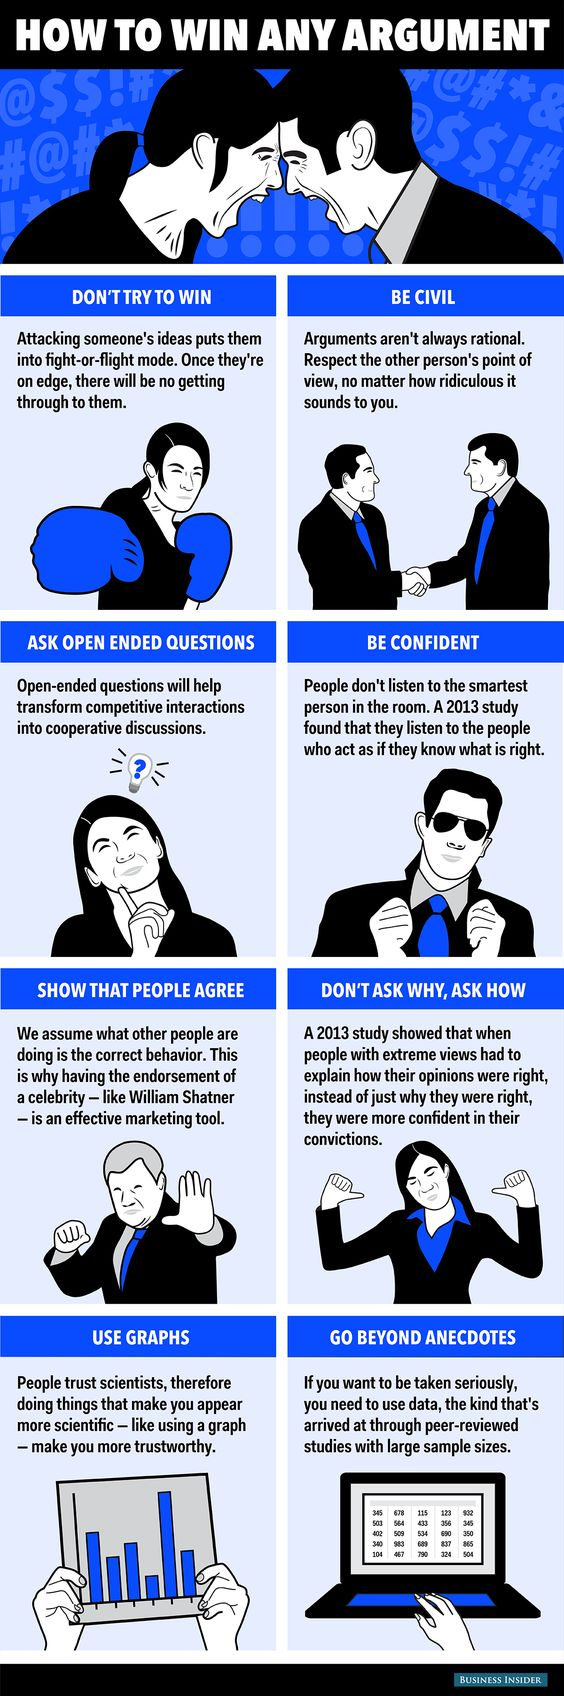 Here's how to win any argument. 1. Don't get into an argument in the first place, you will never win, challenging someone's belief systems plus you put them in fight or fight mode. Use these tactics for debate & discussion. In the end if you can't agree, walk away, never lose your dignity & never lower yourself to arguing - you've lost immediately.